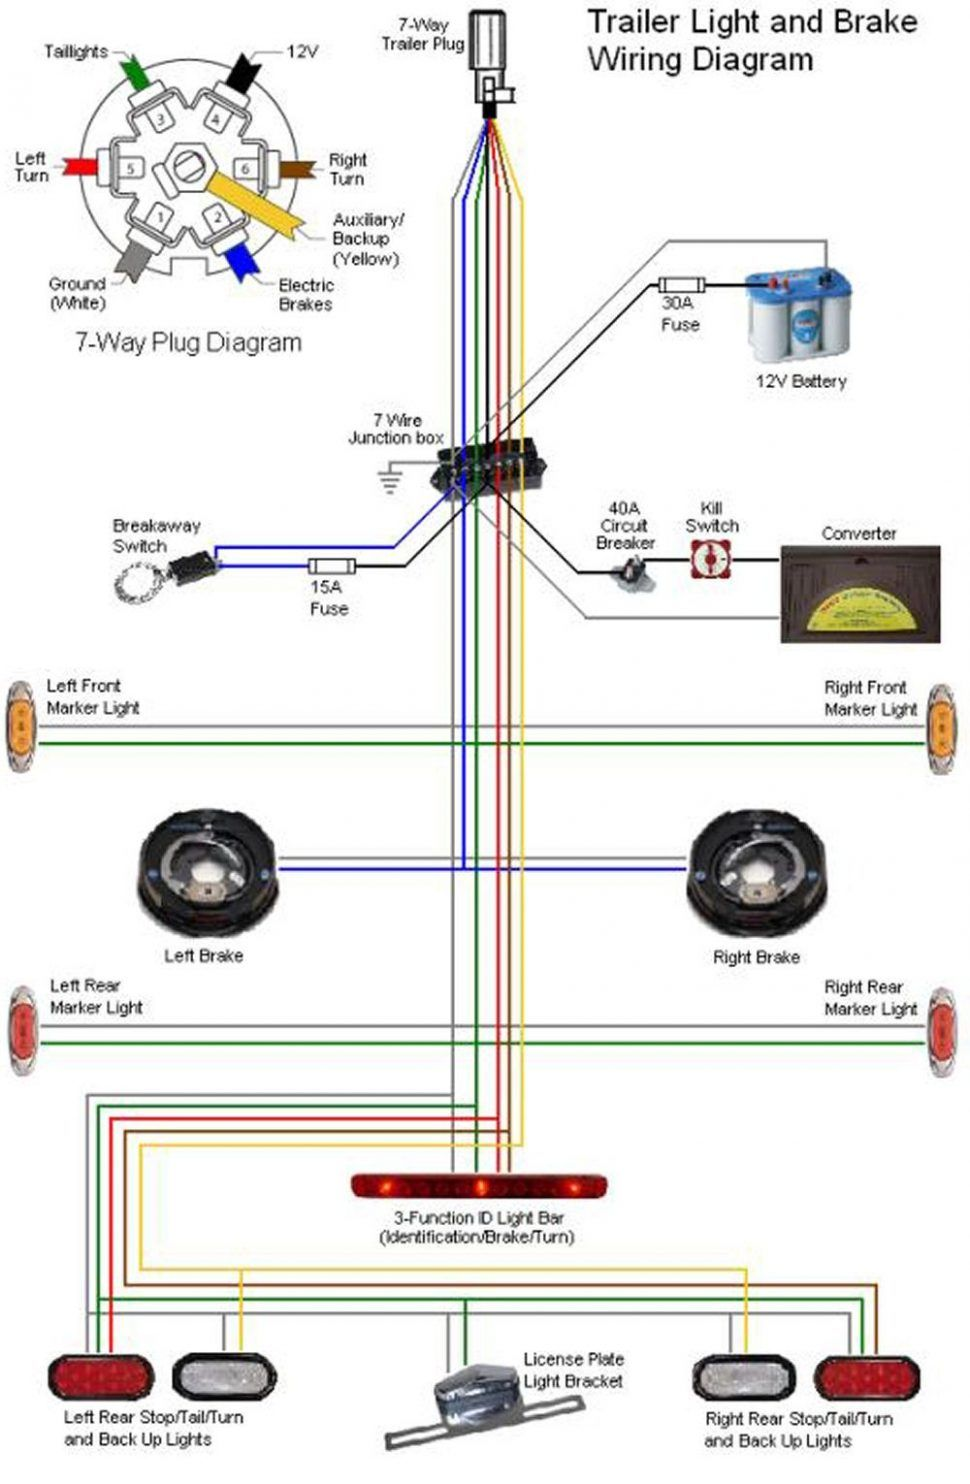 Seven Pin Trailer Wiring Diagram Trailer wiring diagram